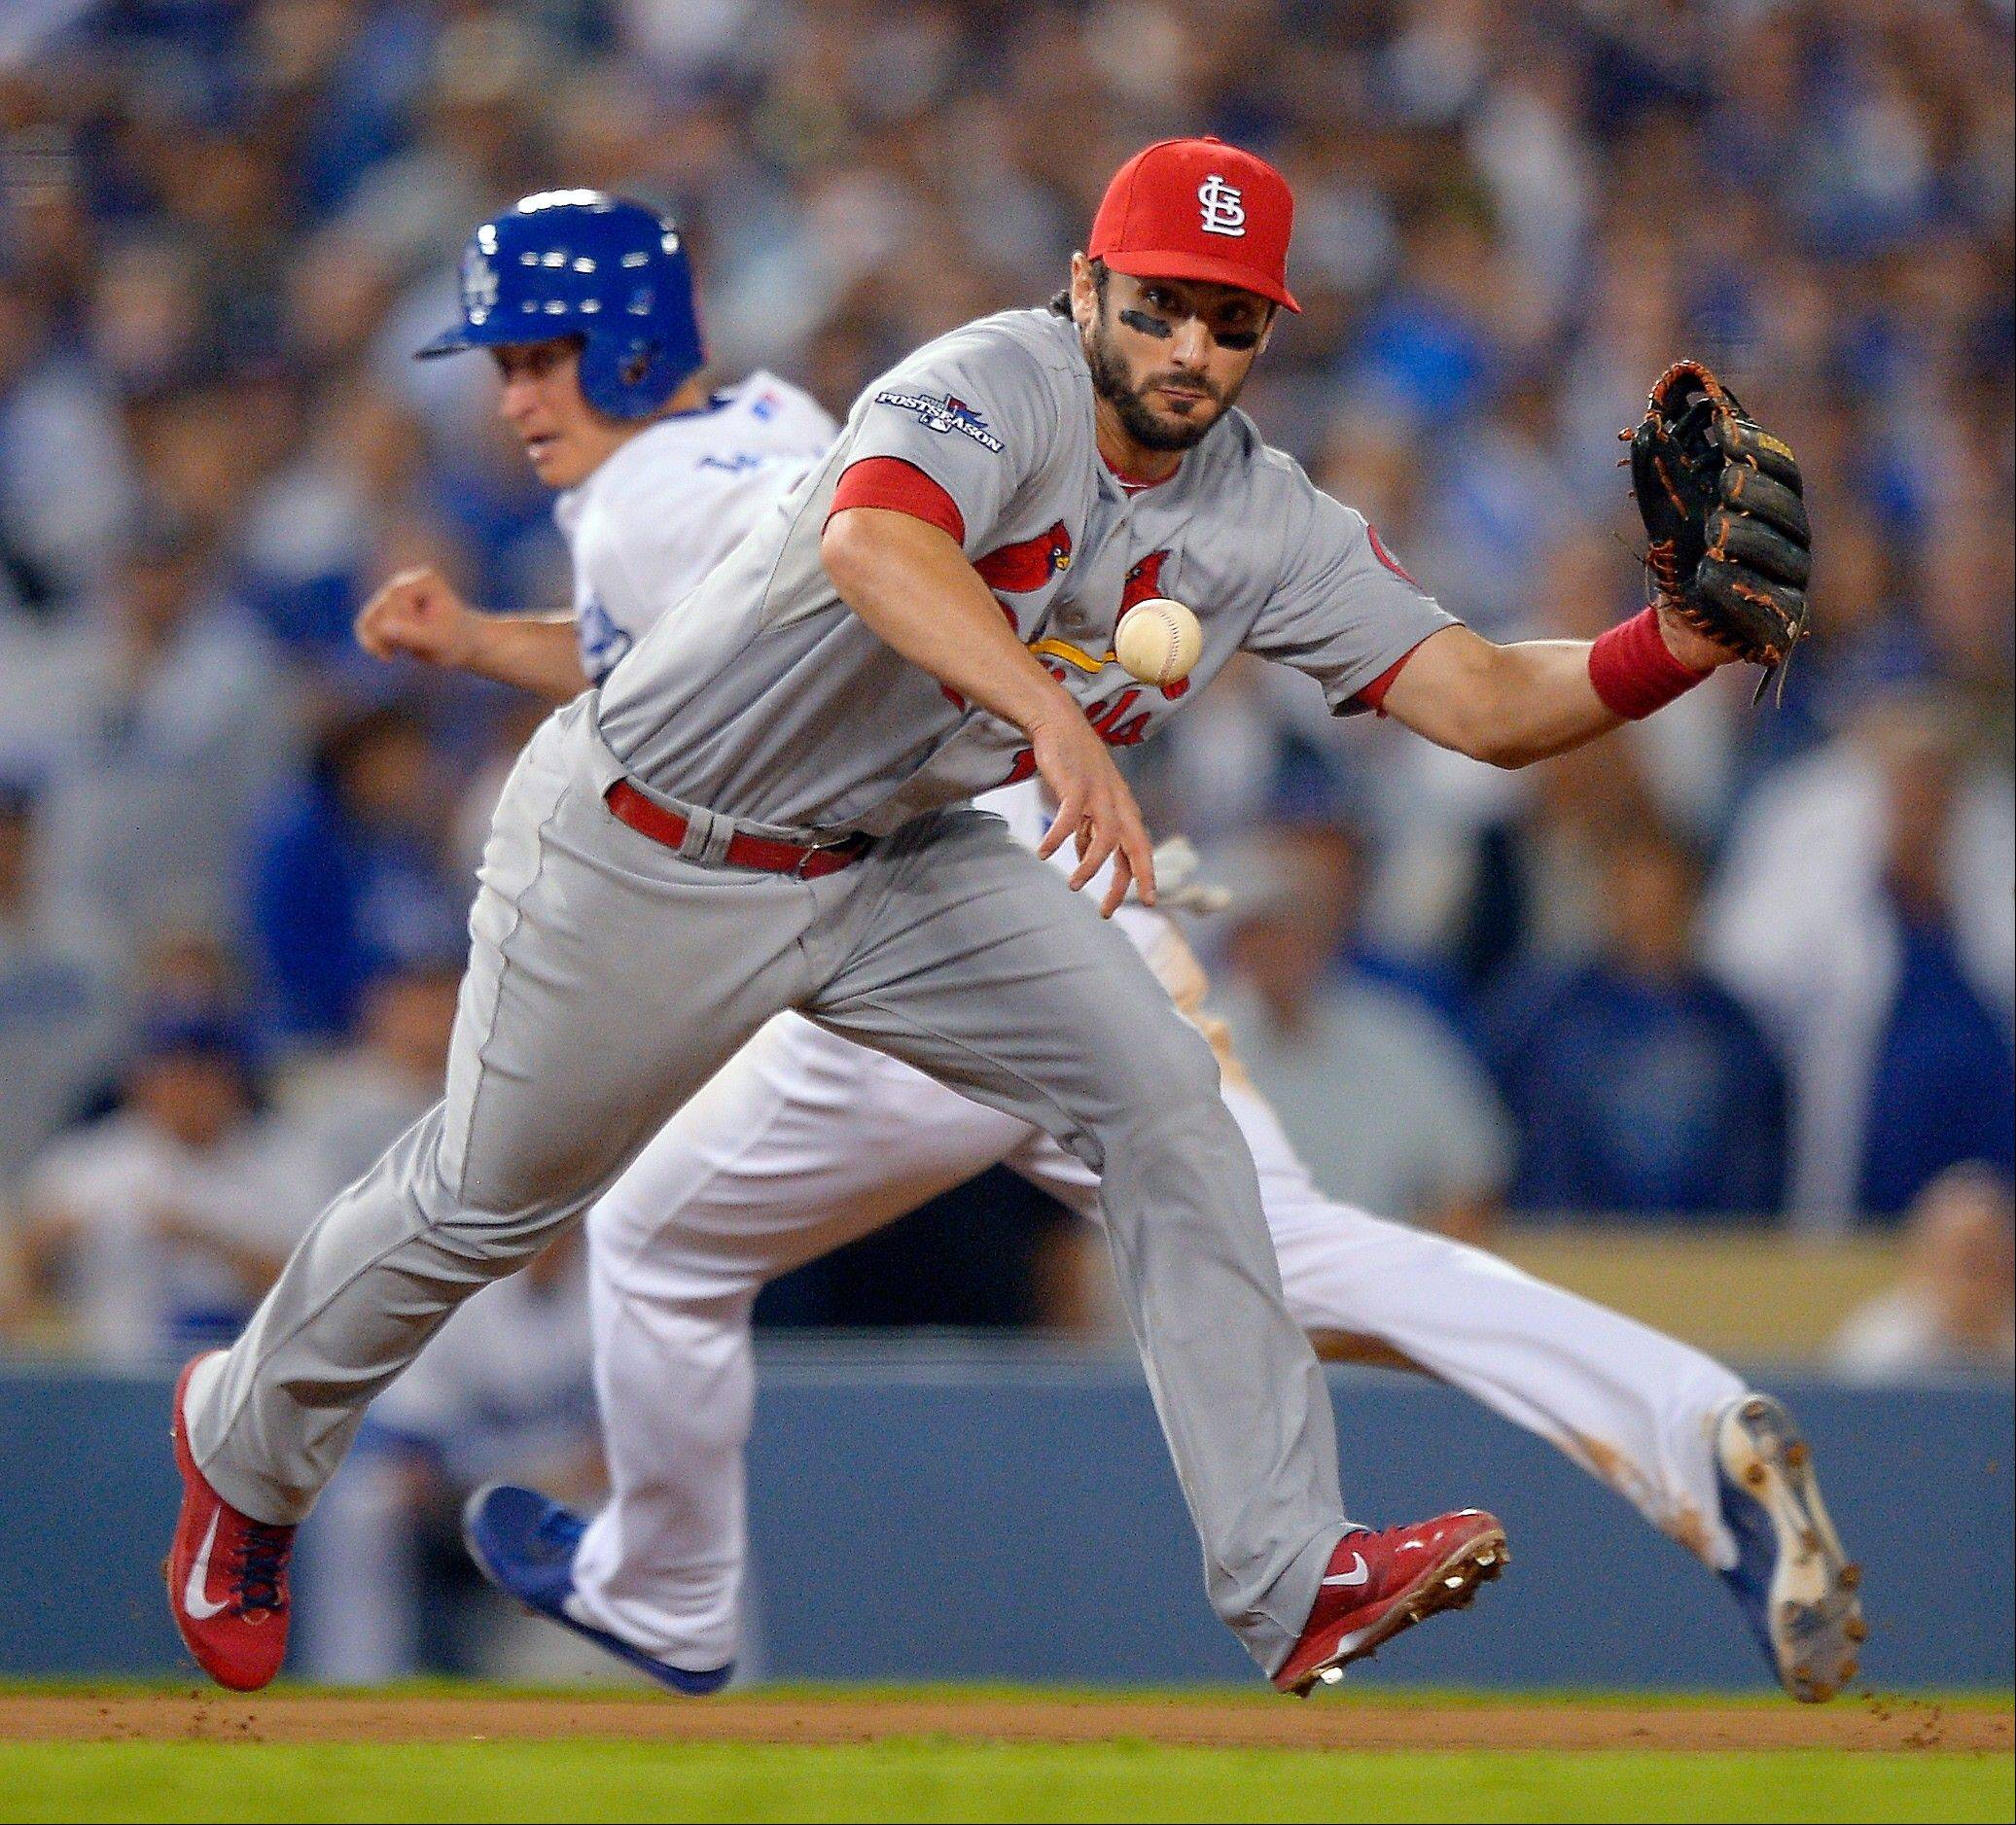 The Cardinals' Matt Carpenter fields a ground ball hit by the Dodgers' Adrian Gonzalez as Mark Ellis advances to third during the eighth inning.